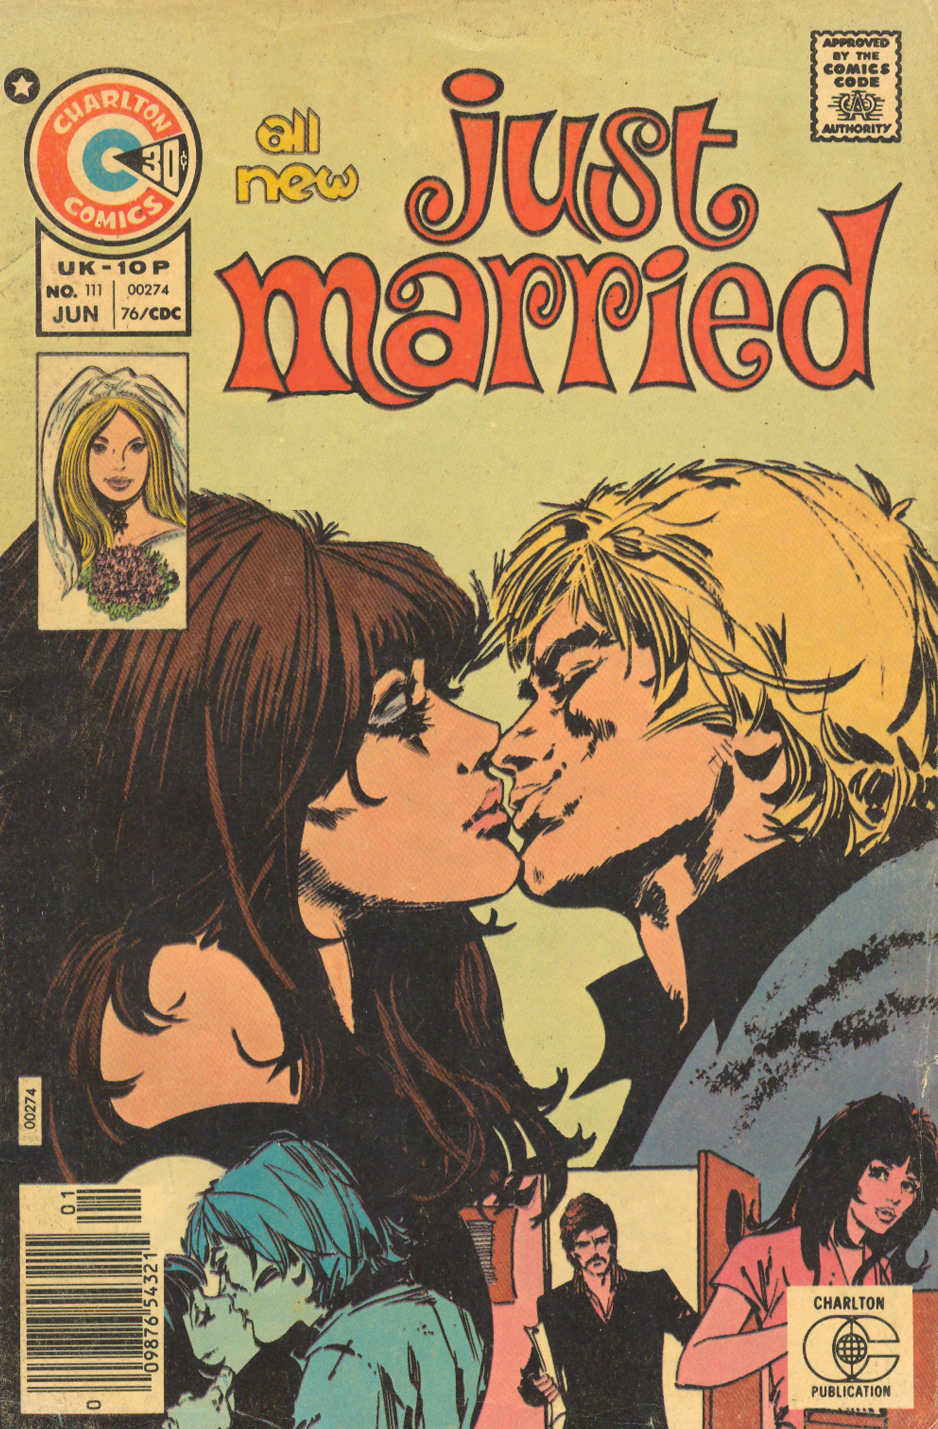 Just Married #111 (June 1976) Illustrated by: Jorge Badia Romero